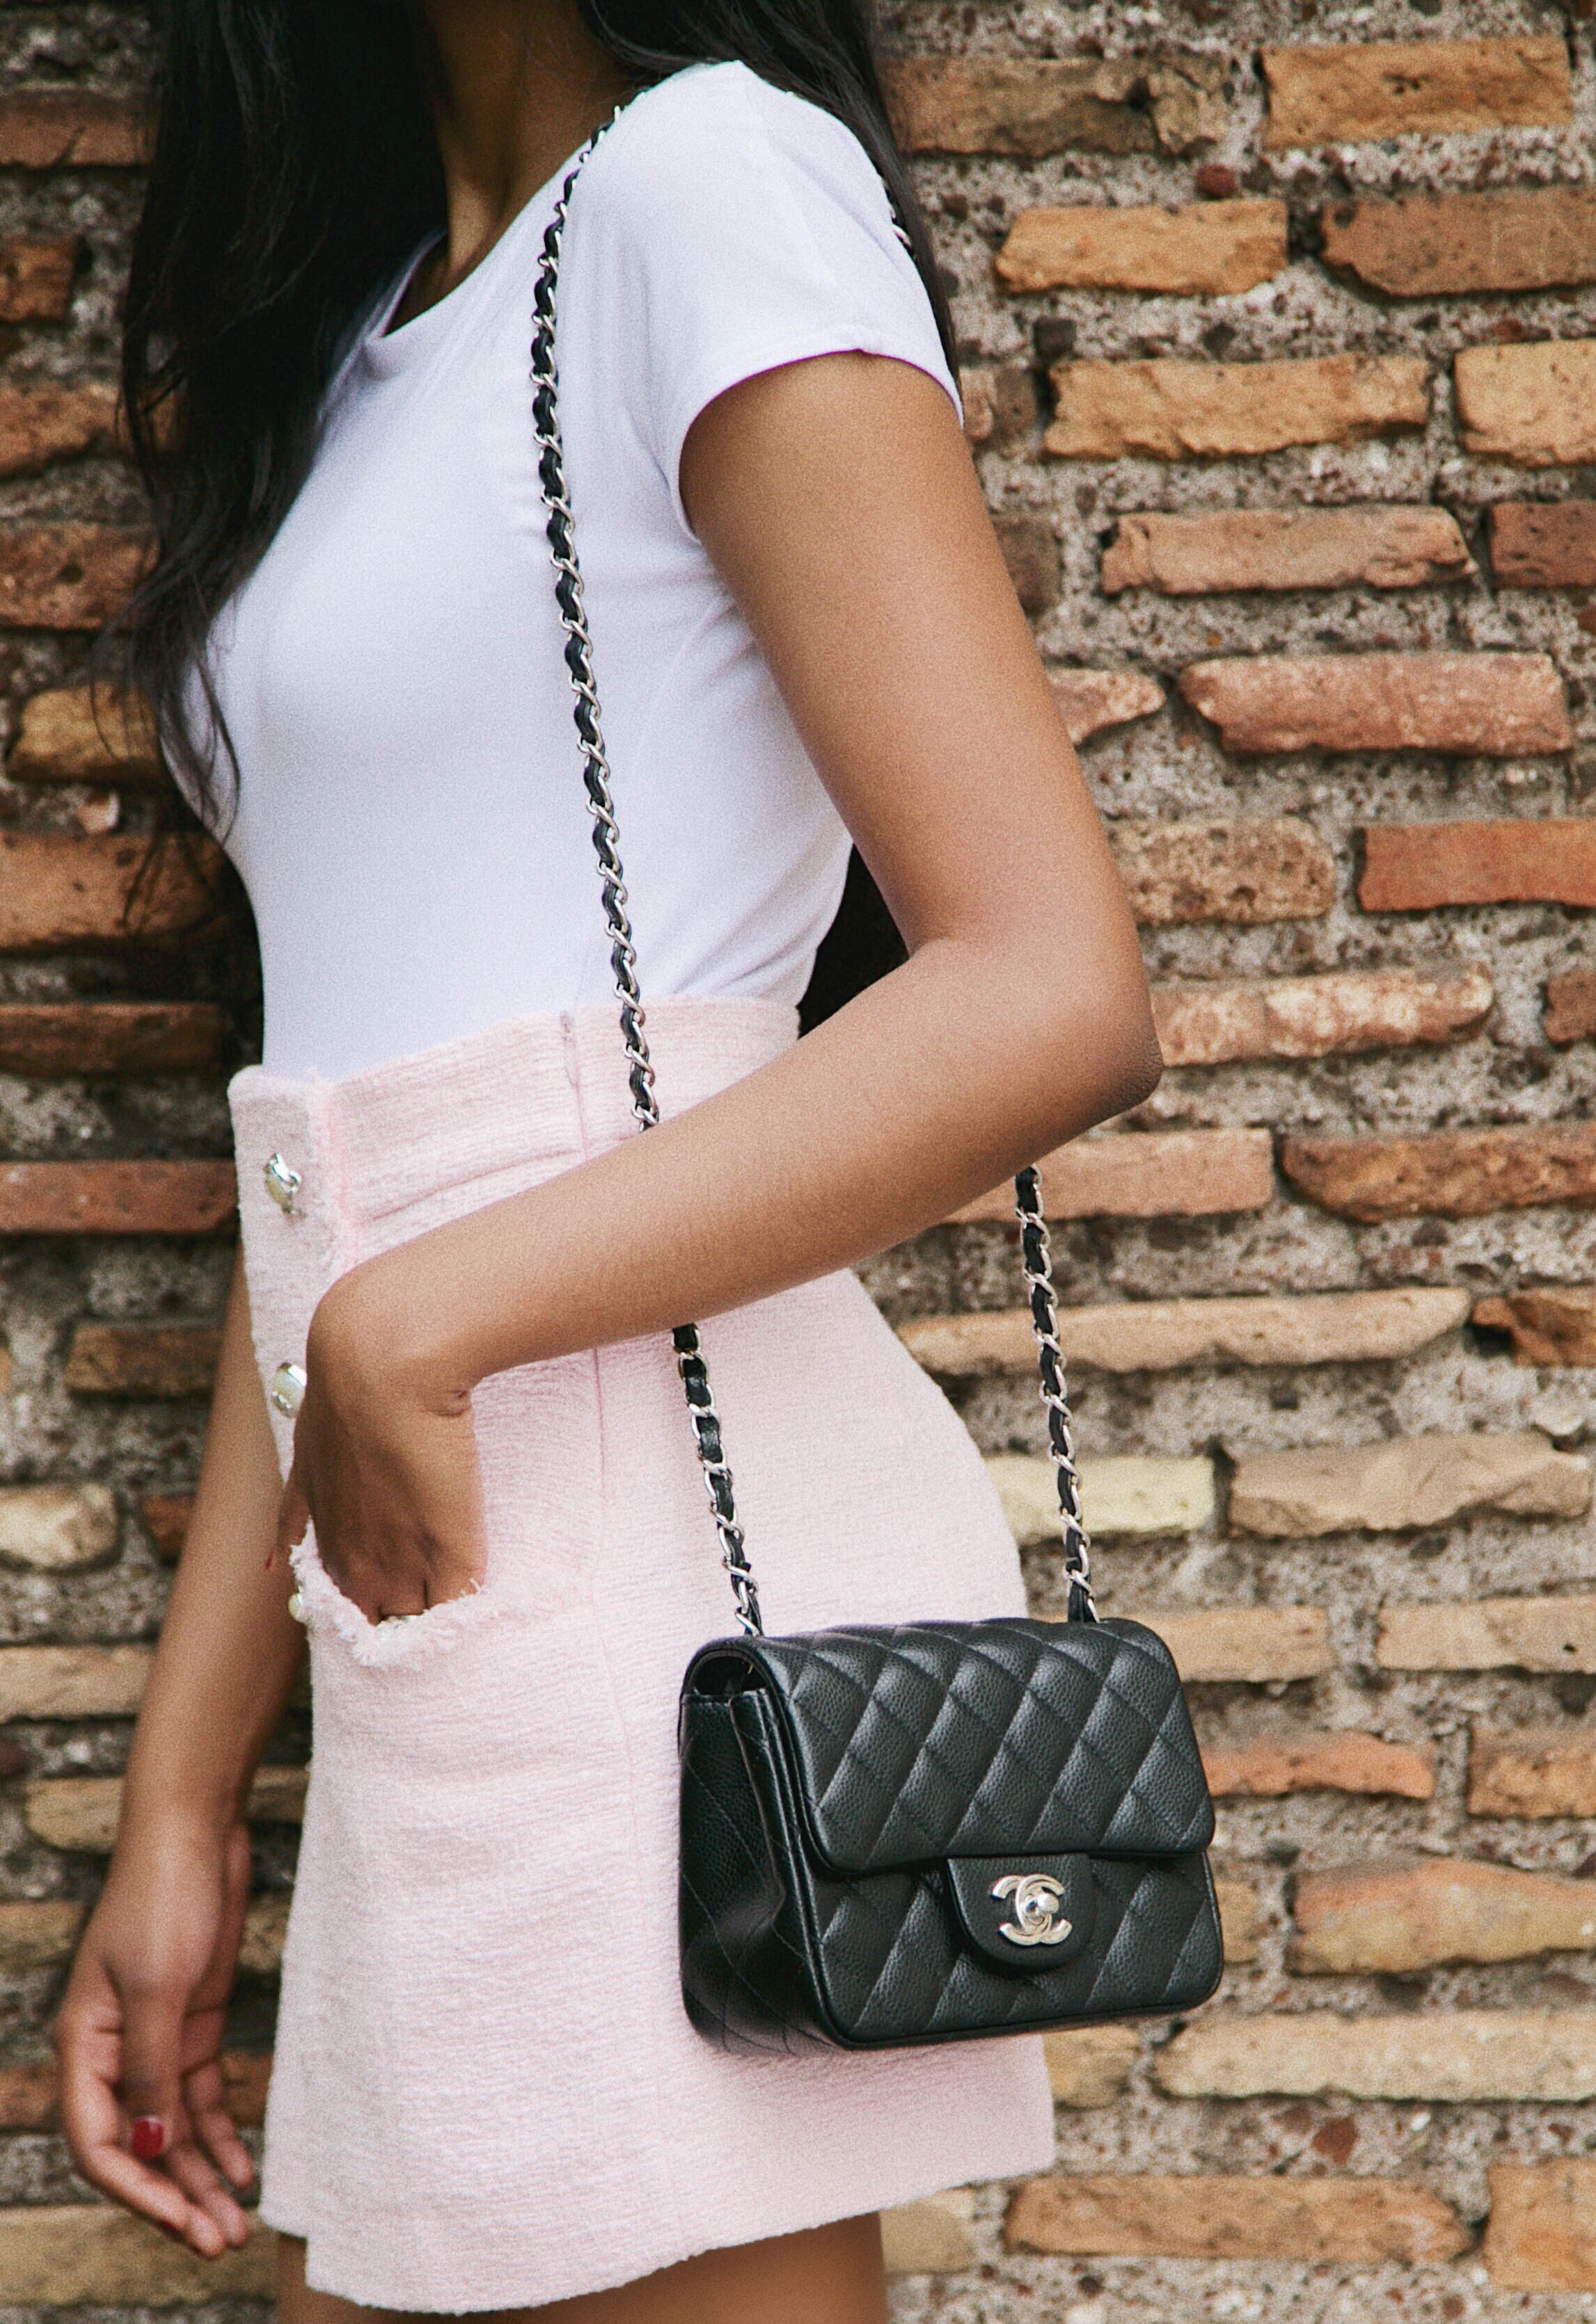 27adefe186 Chanel Square Mini Review - Steffy's Style